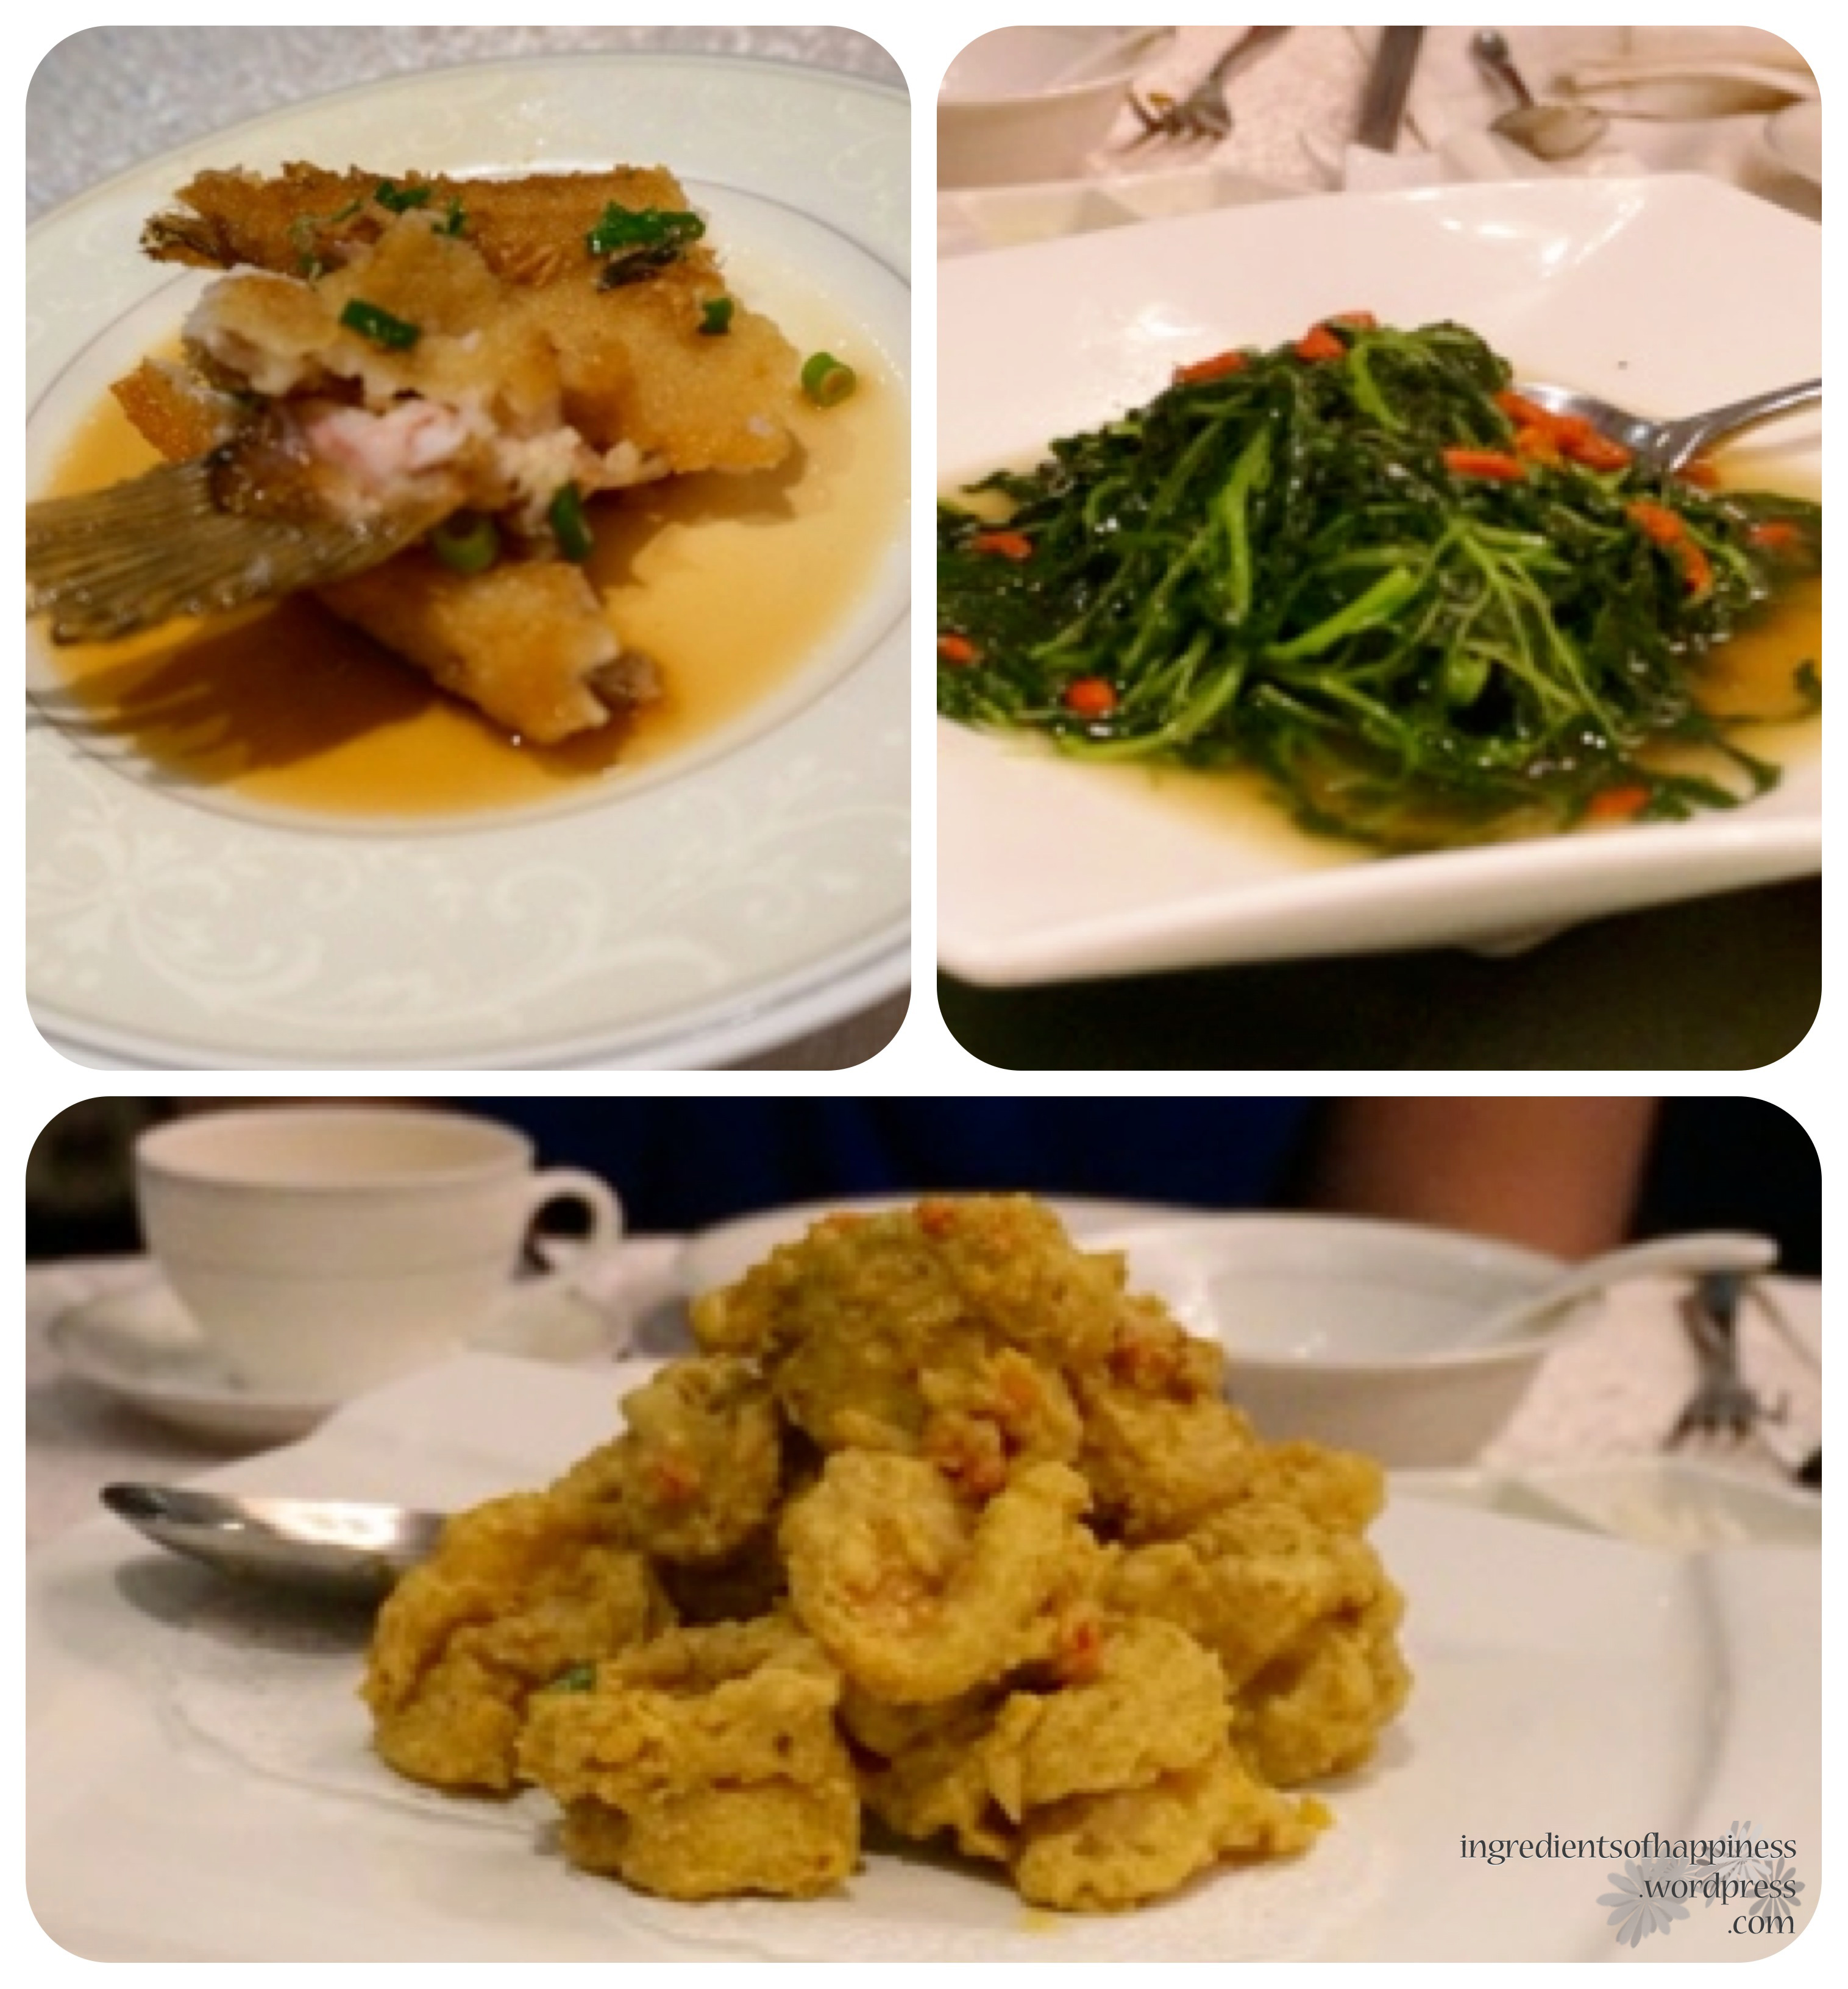 Paradise pavilion marina bay financial centre link mall for Fish dishes for dinner